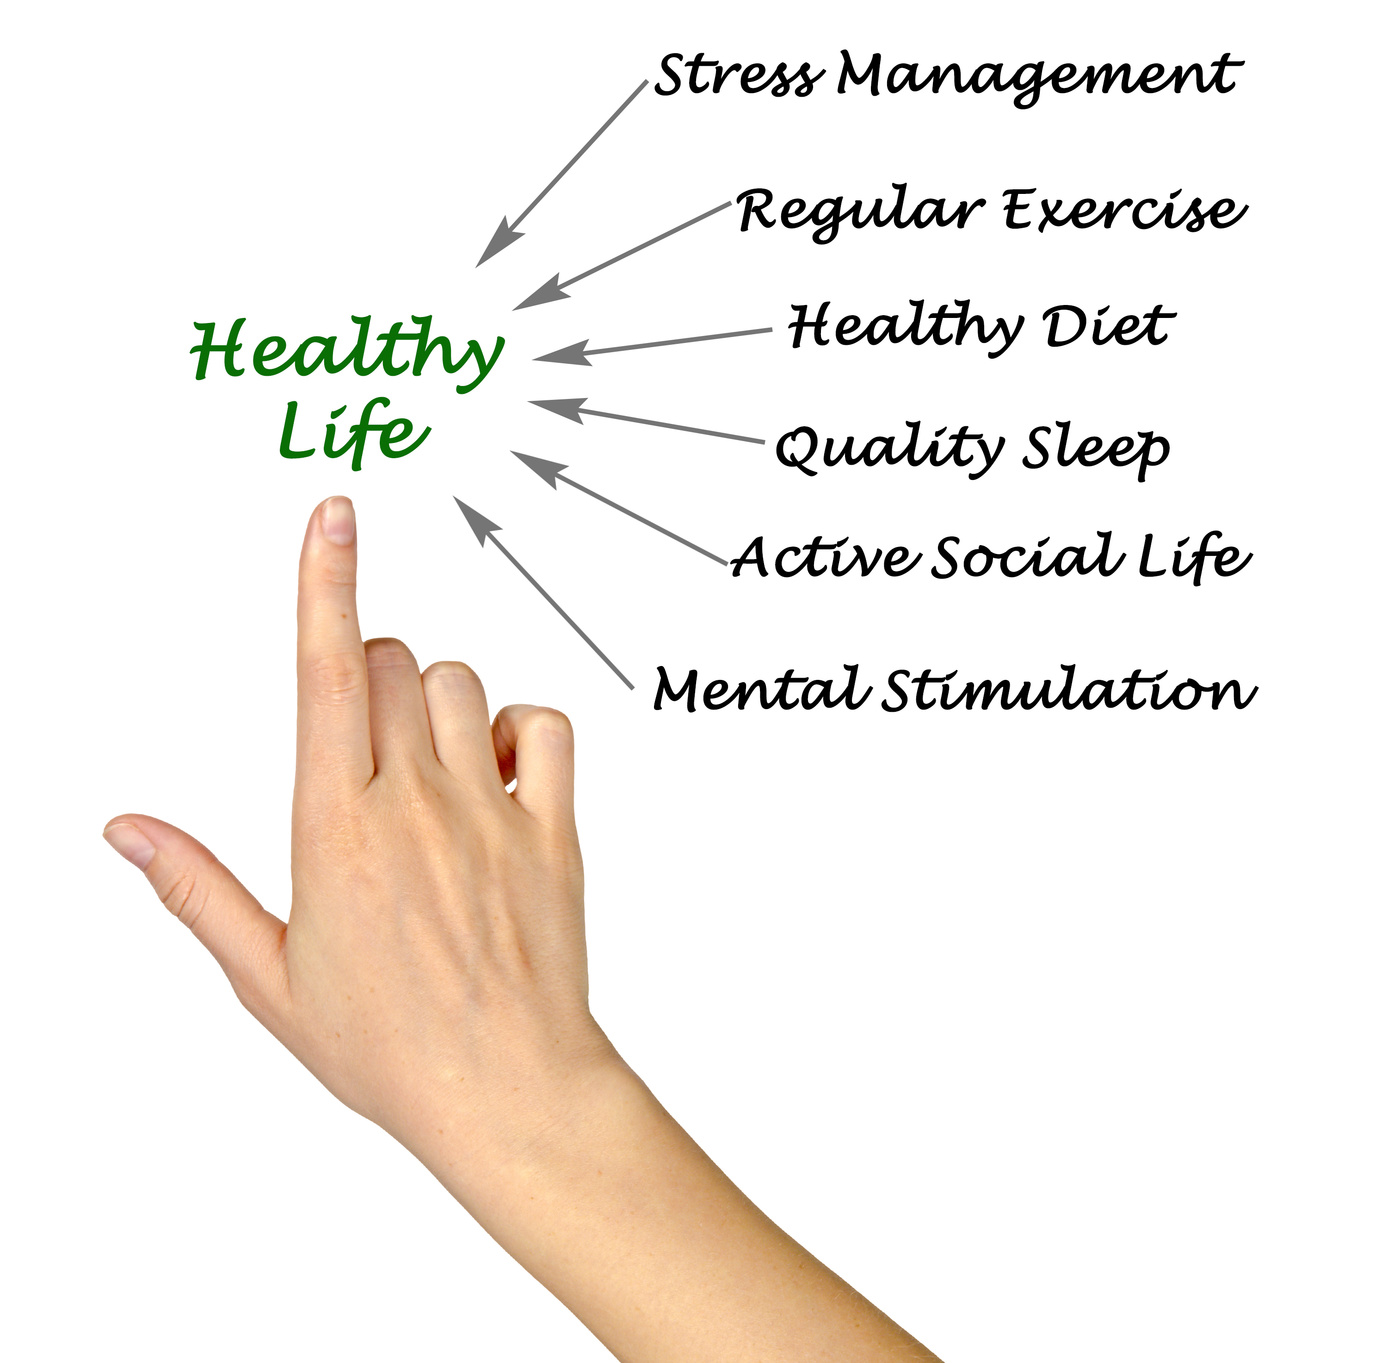 Stress Management – How to Deal with Stress?